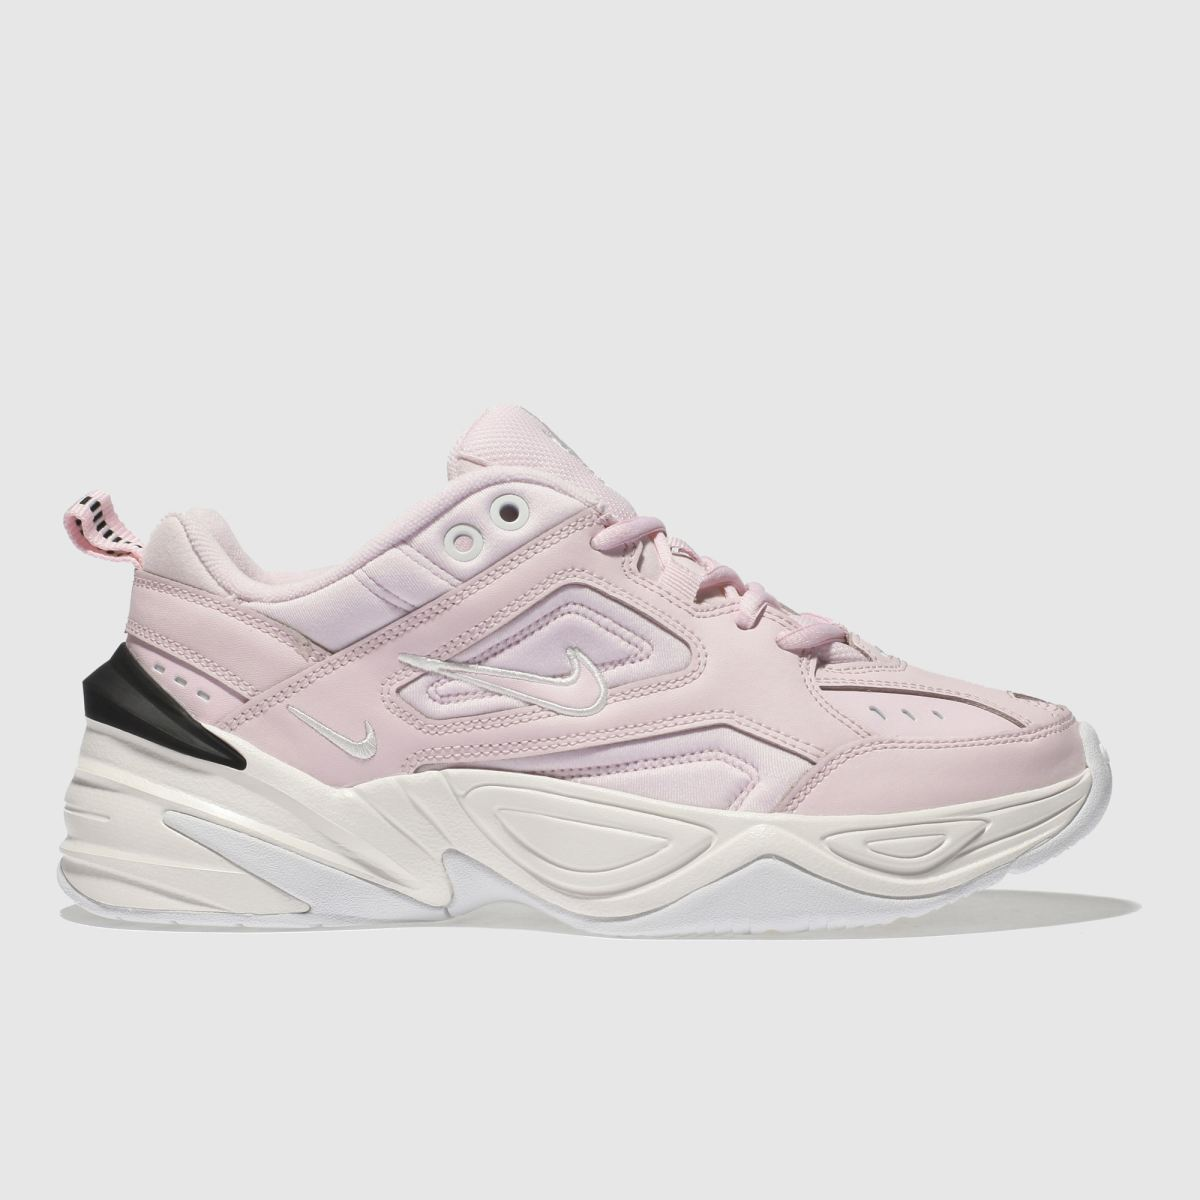 Nike Pale Pink M2k Tekno Trainers